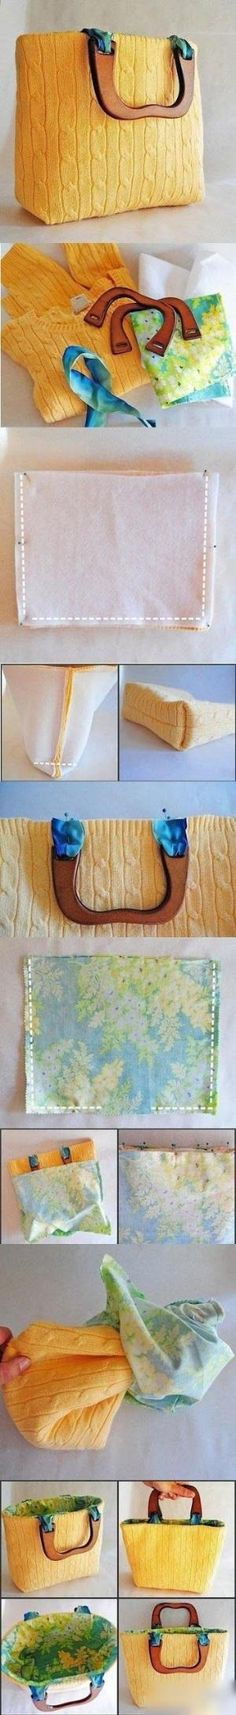 How To Make a bag from old sweater by batjas88